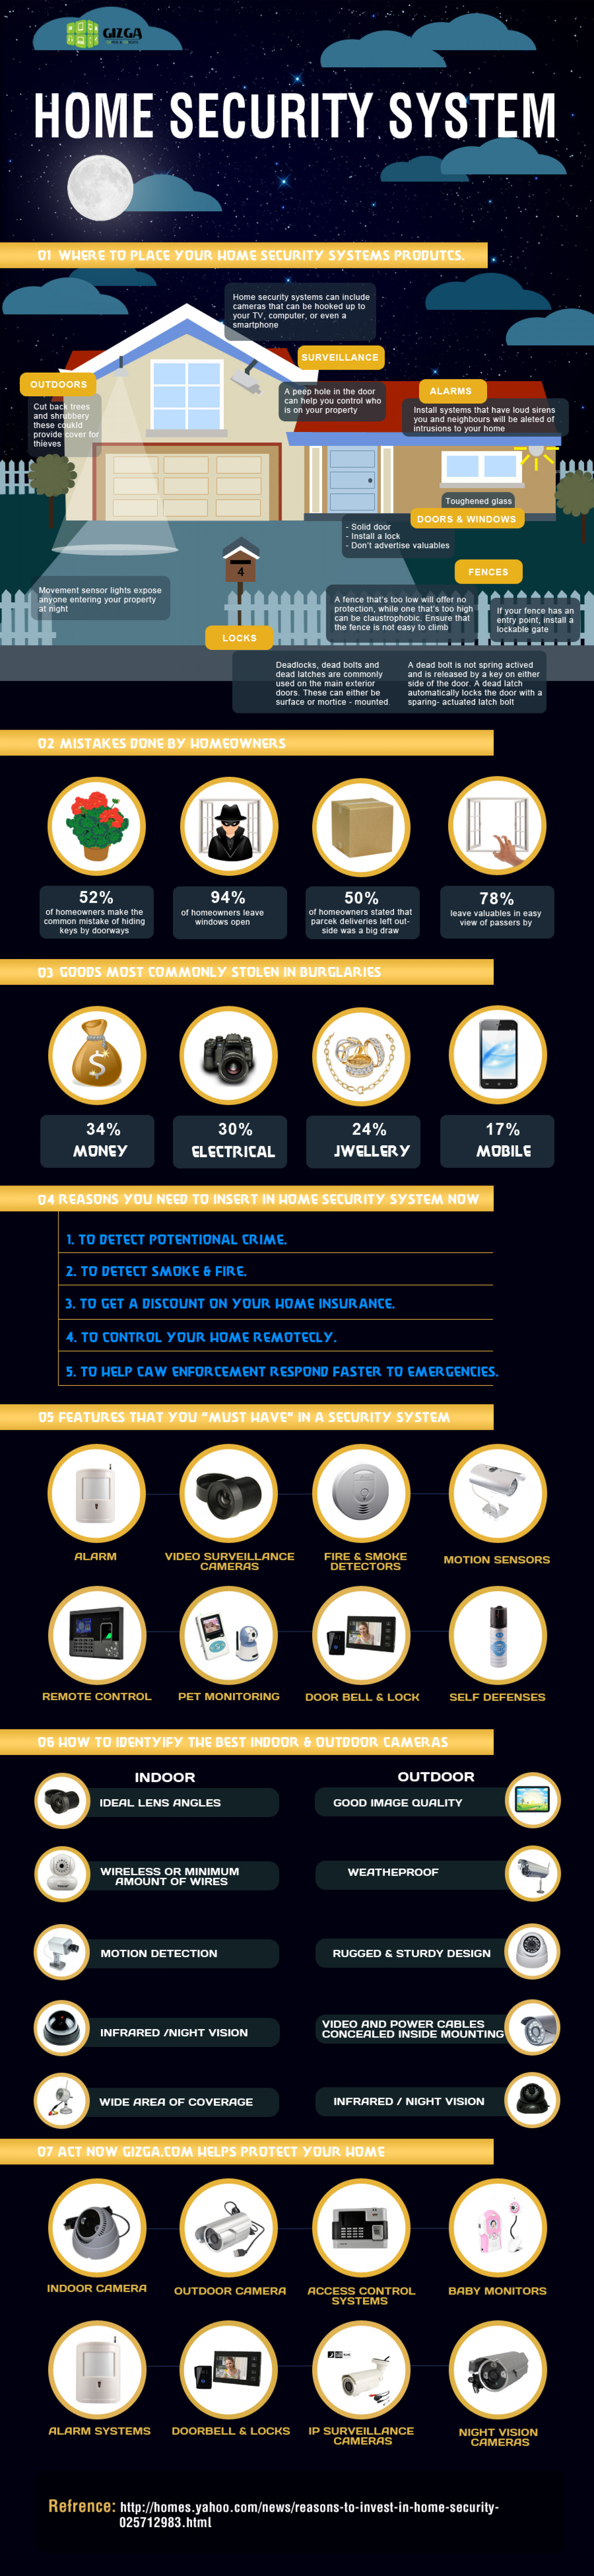 Home Security Systems Infographic